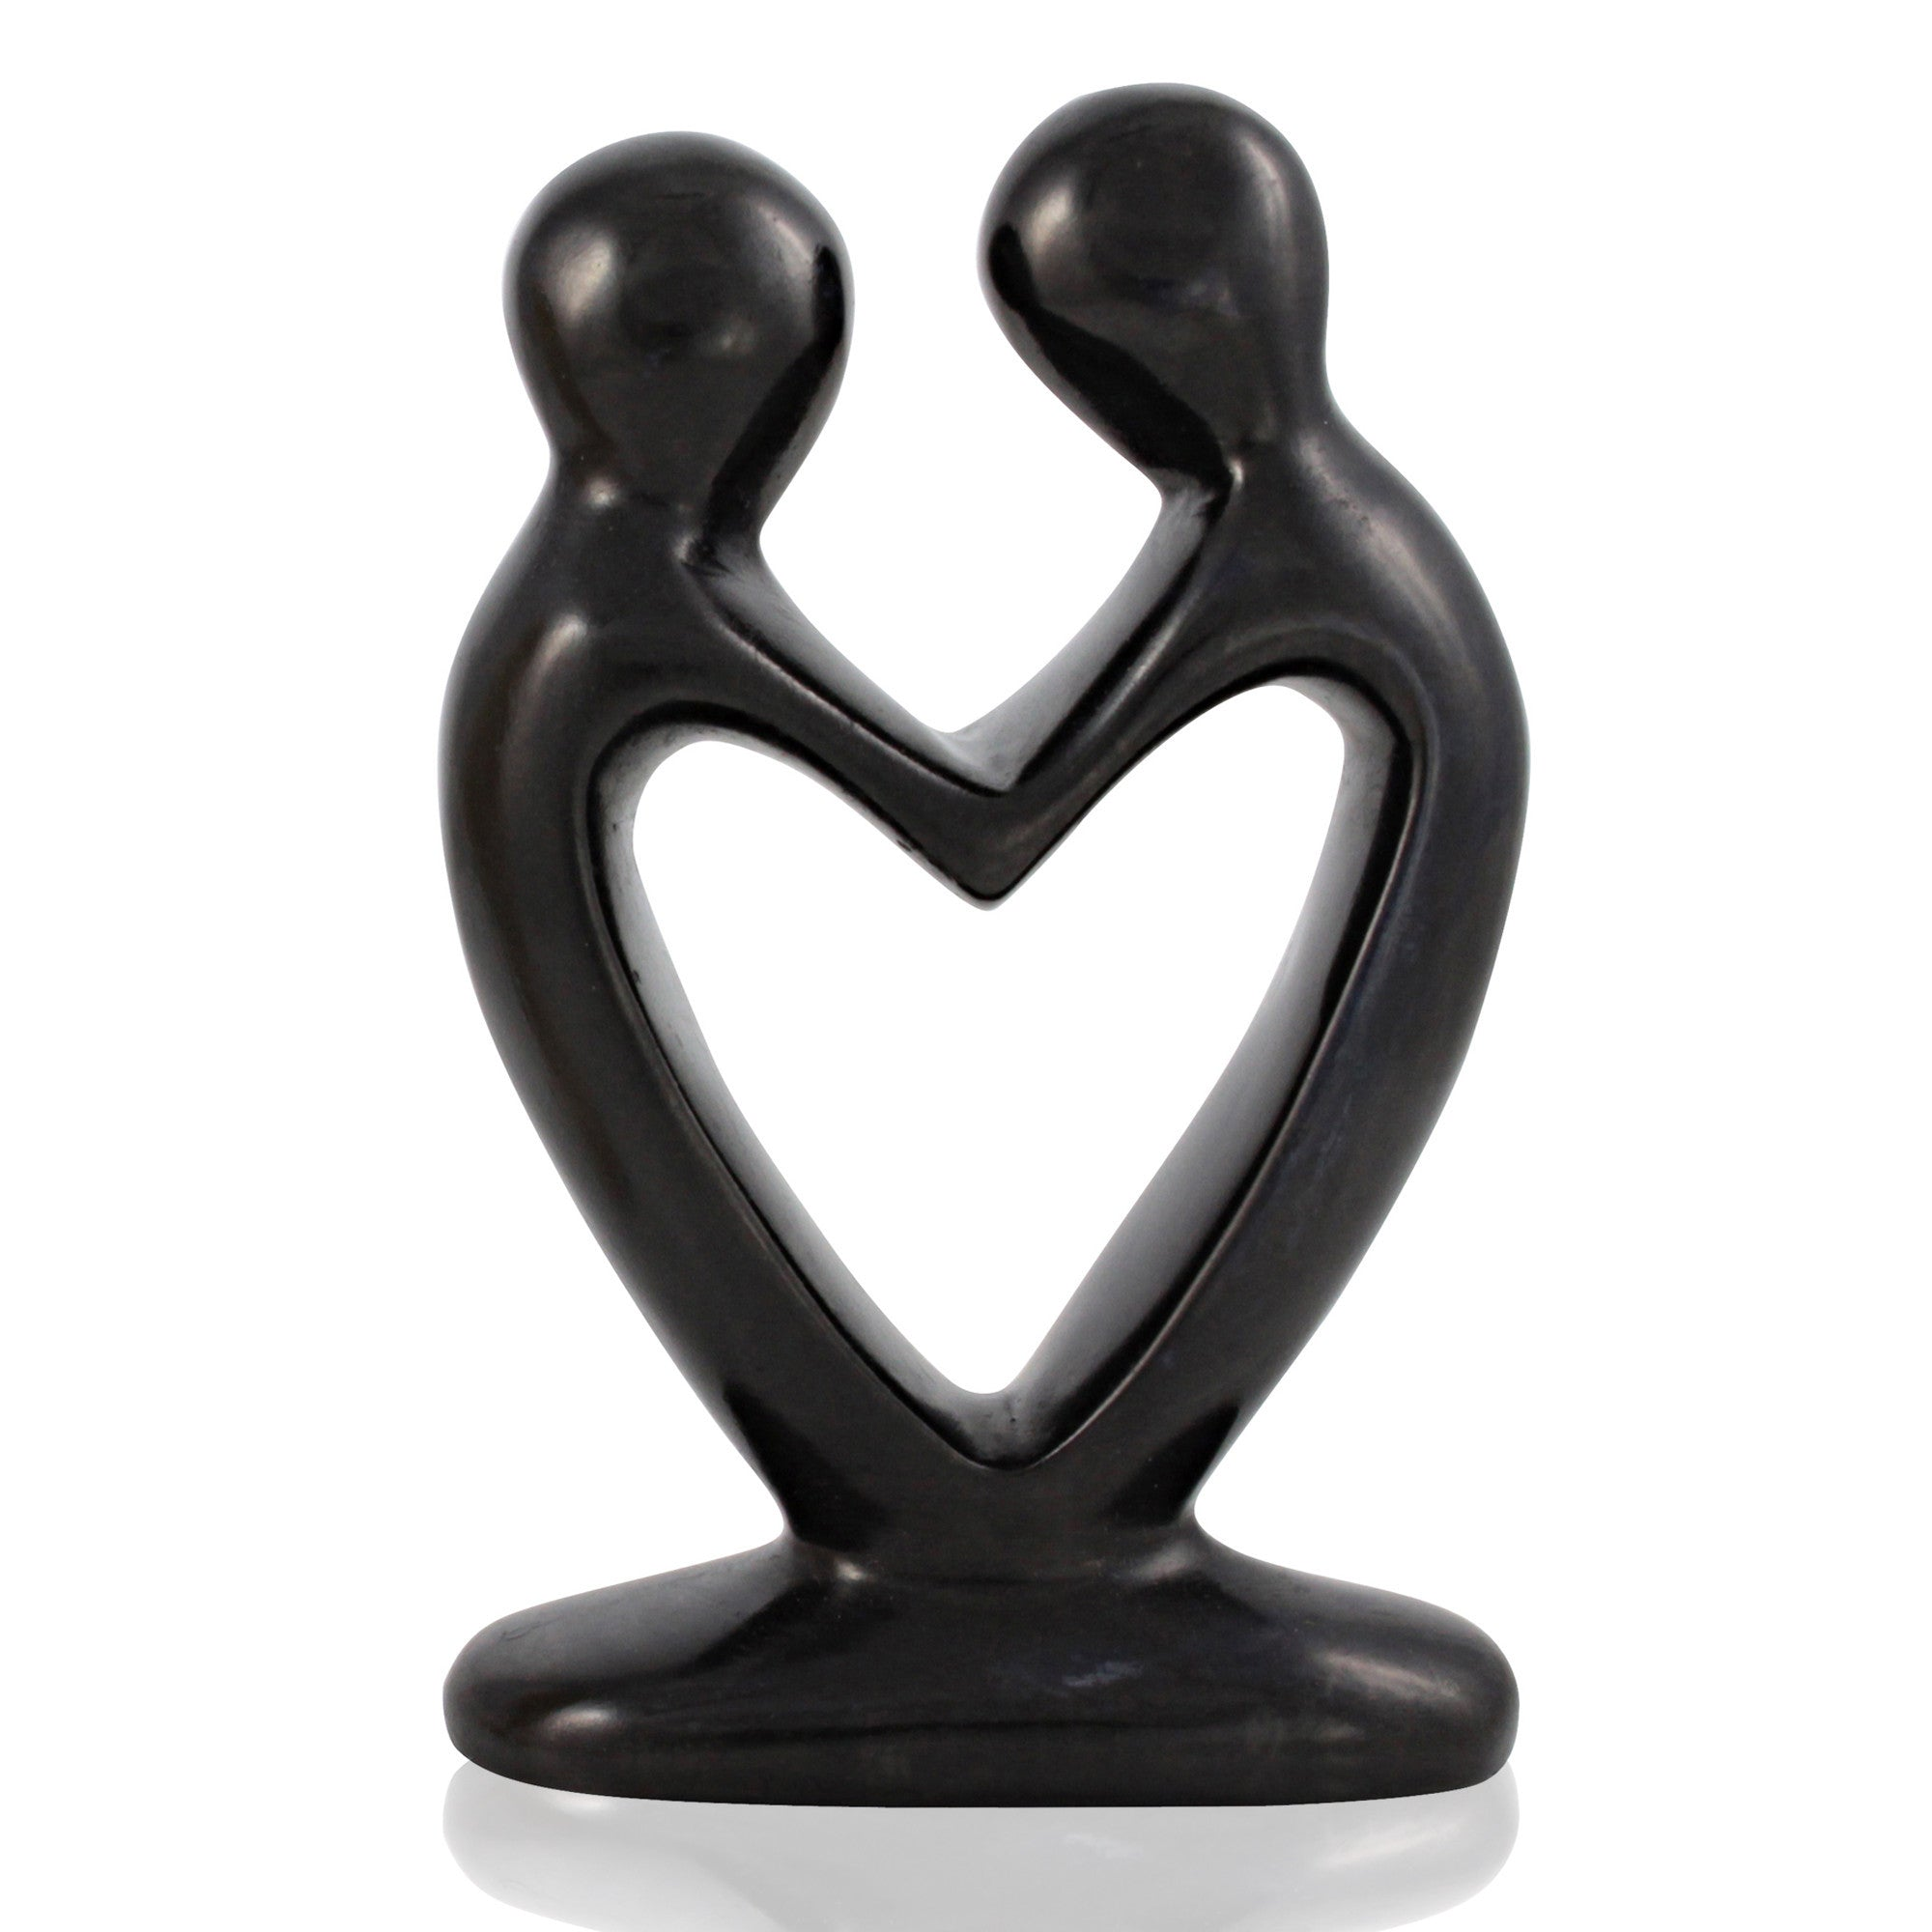 Small Kenyan Heart Couple Soapstone (Black) Figurine by Venture Imports